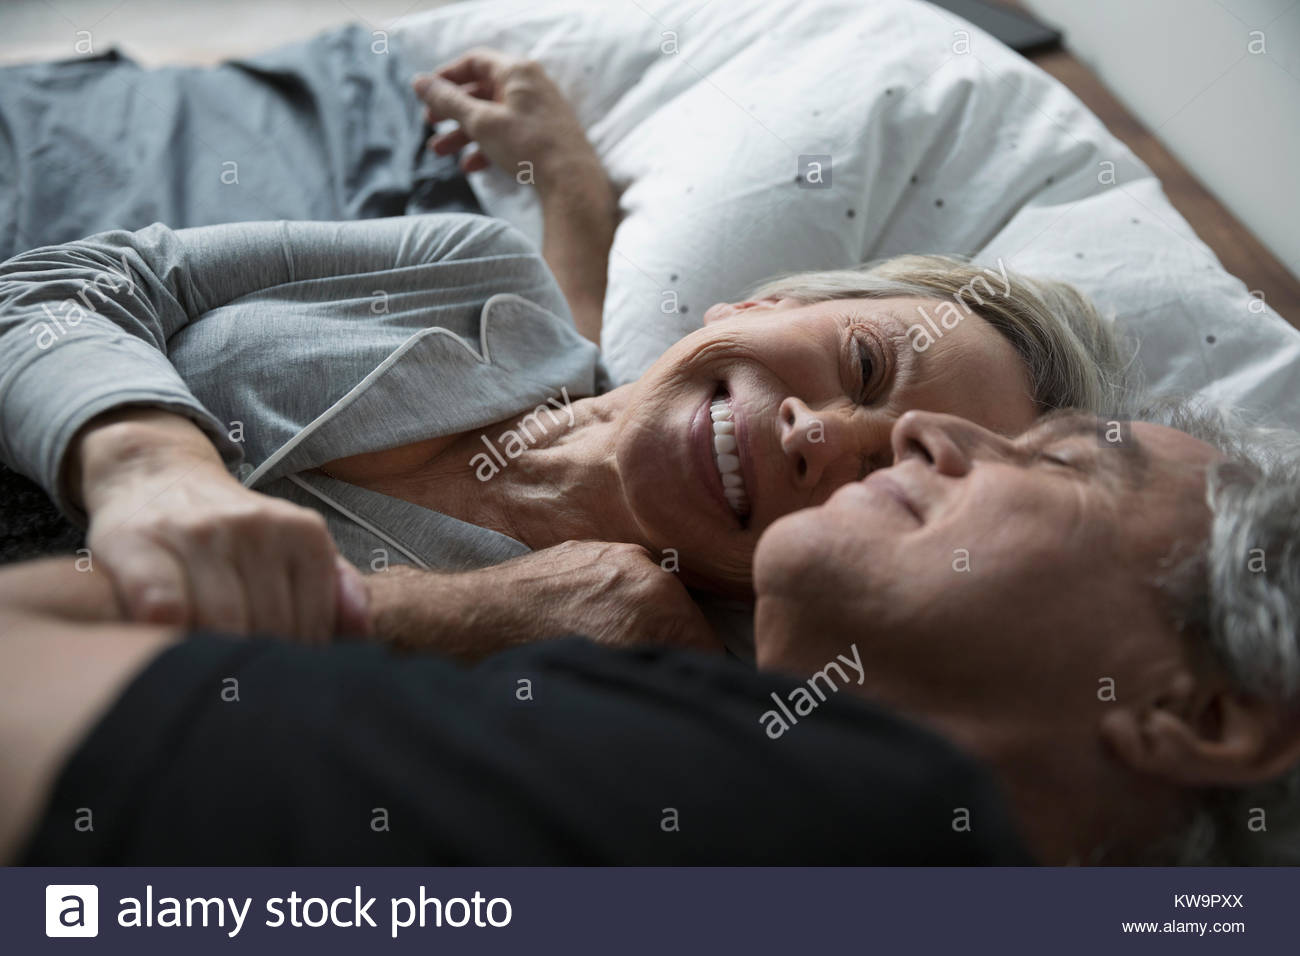 Affectionate,happy senior couple cuddling in bed - Stock Image